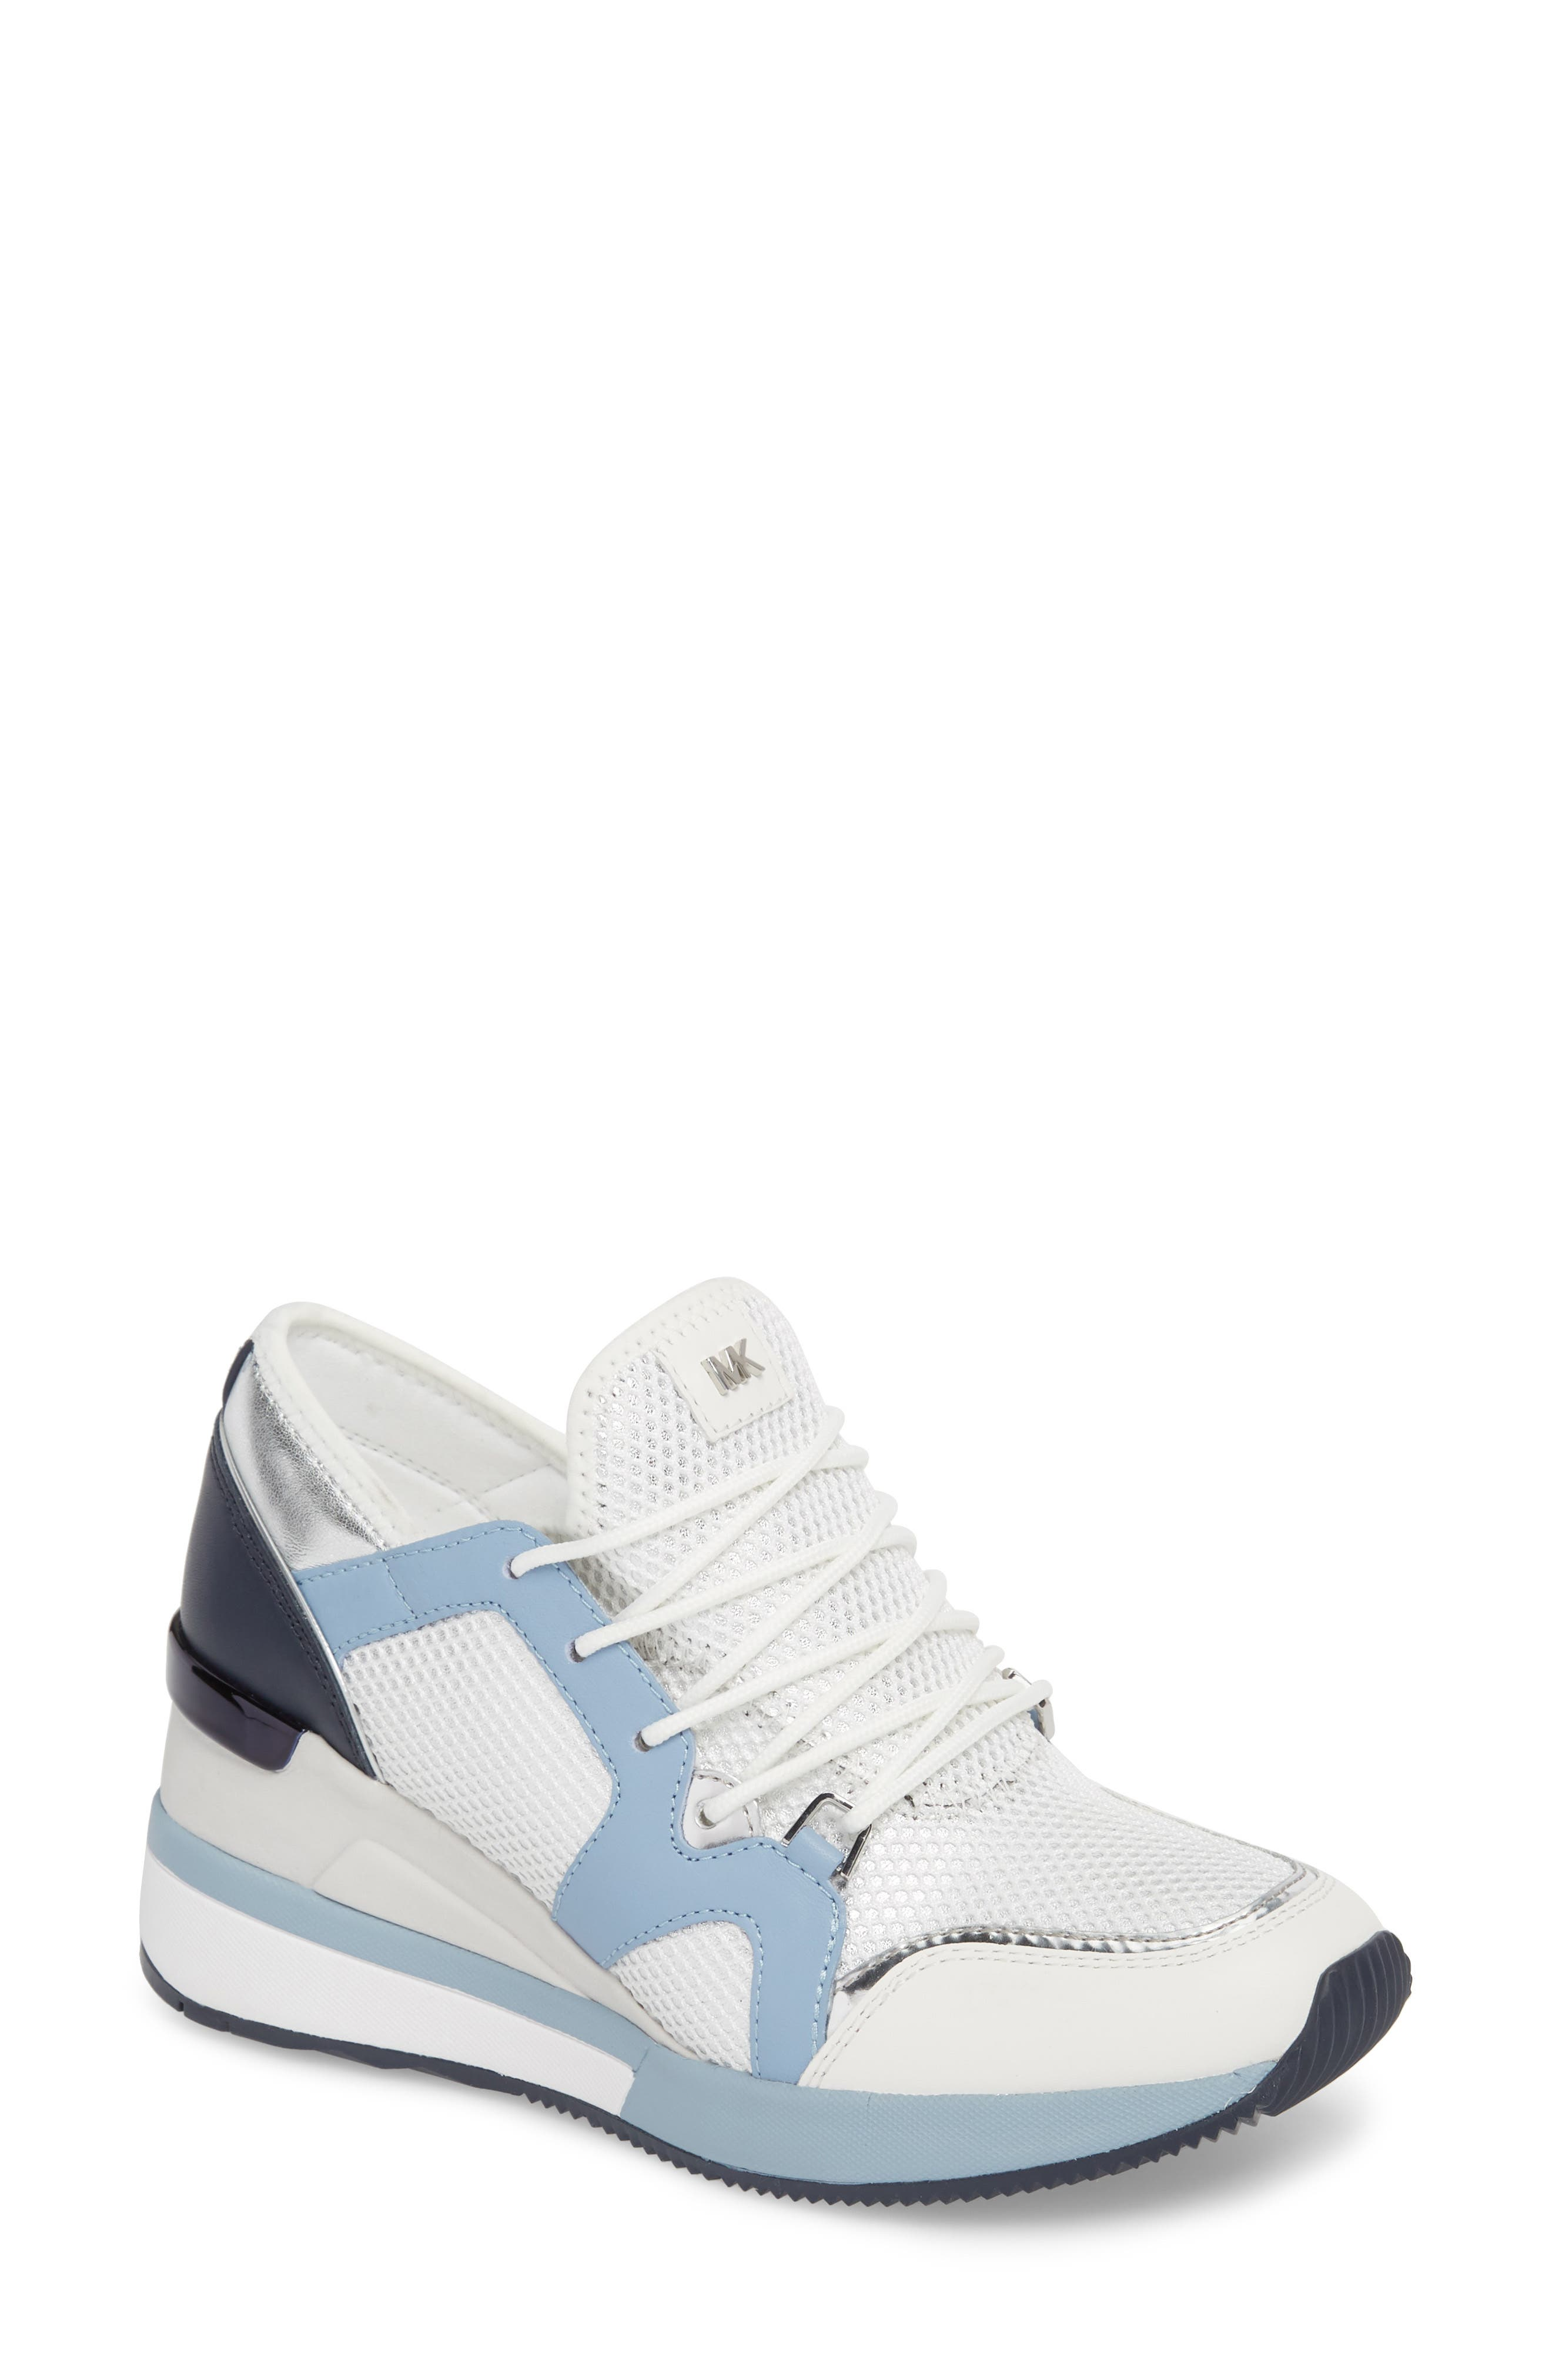 Scout Wedge Sneaker,                             Main thumbnail 1, color,                             429